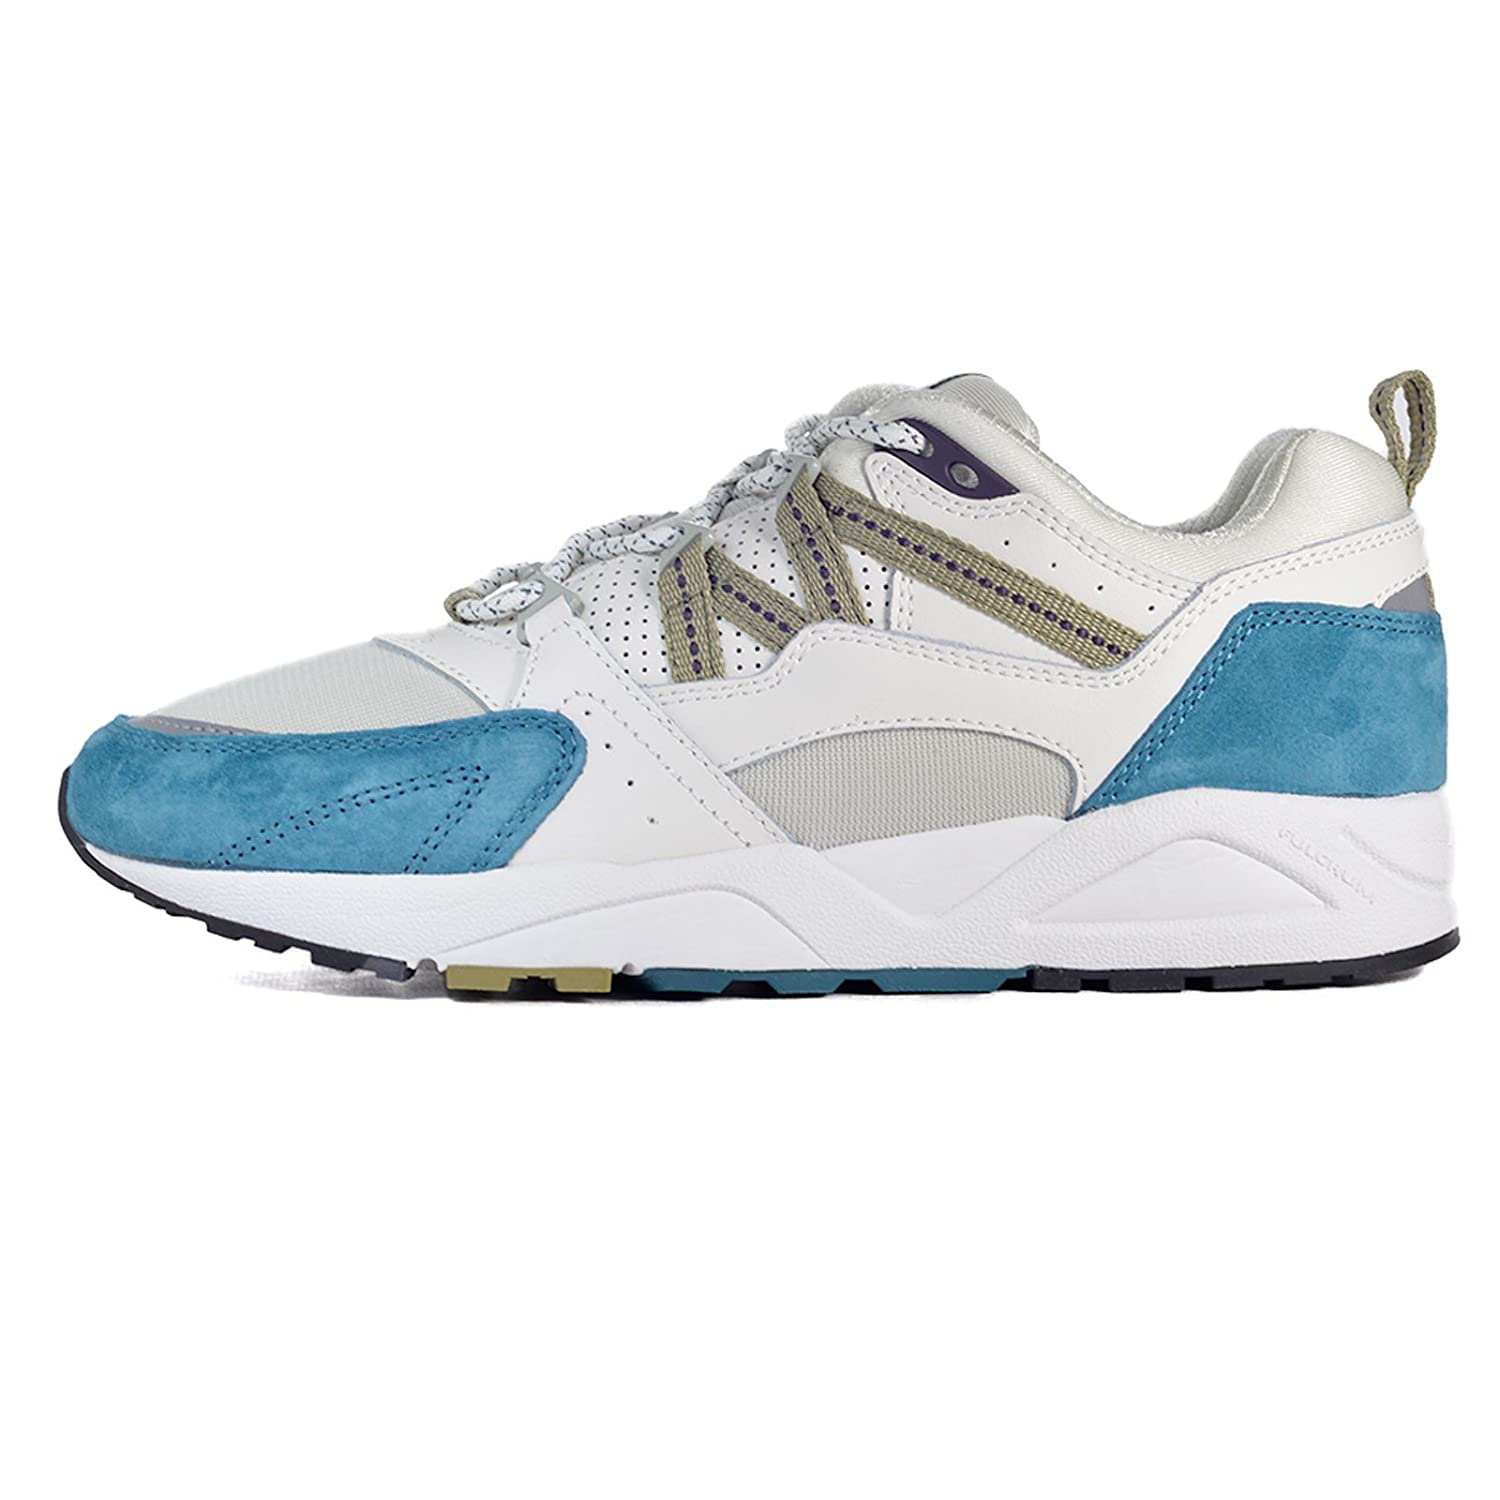 93b7af6343db7 Karhu Fusion 2.0 White Leather and Nylon Sneaker with Light-Blue ...